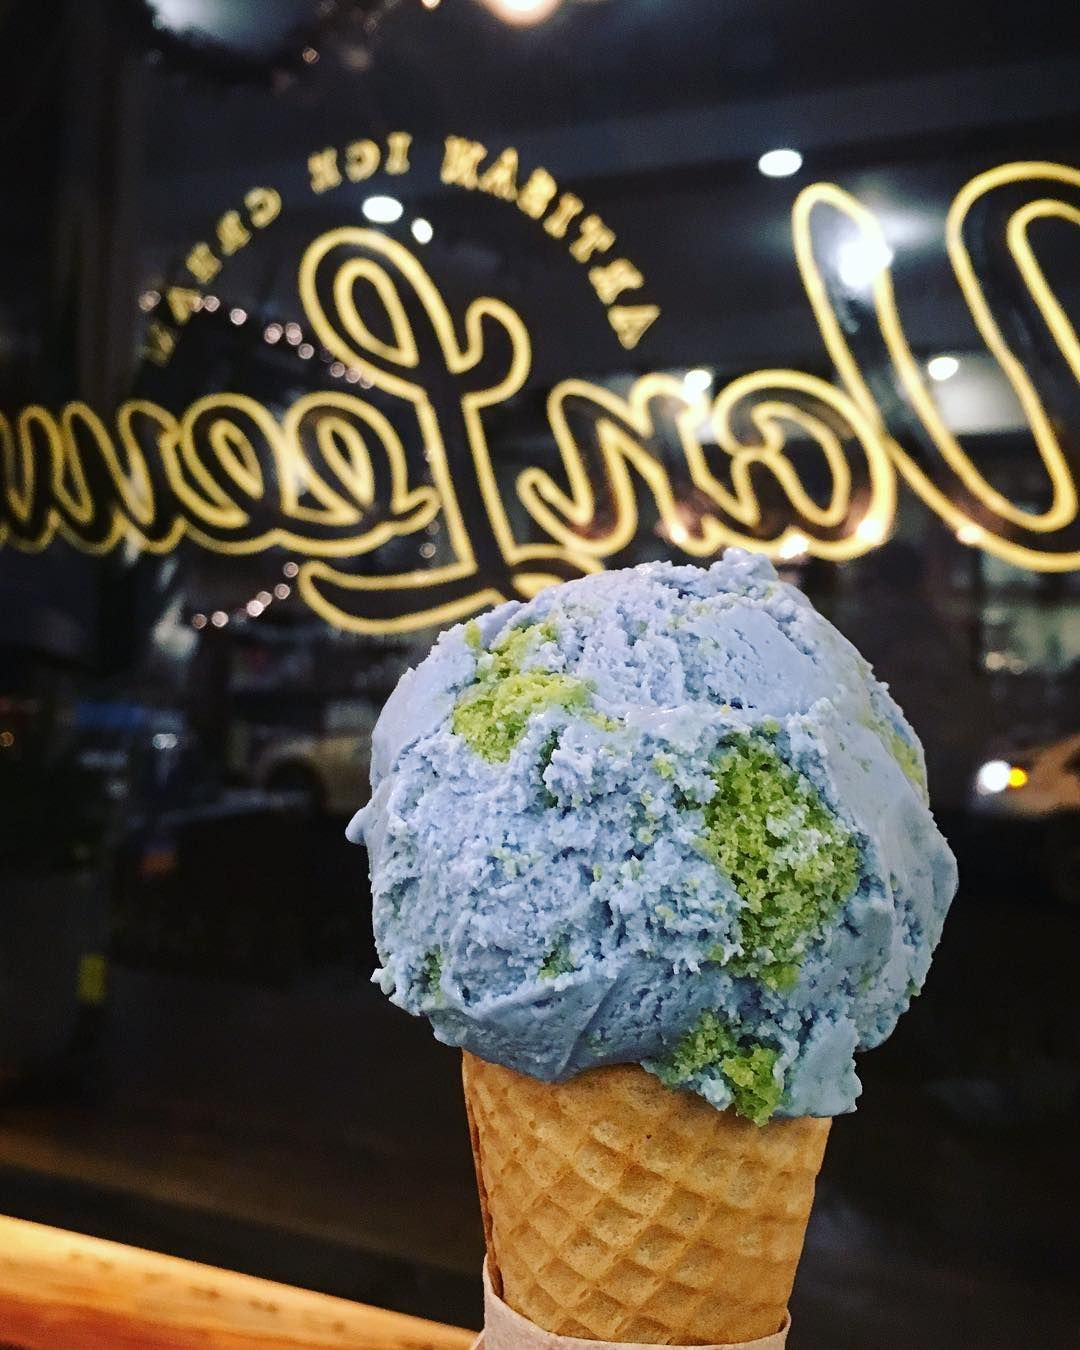 Nychloe How On Earth Does Van Leeuwen Manage To Make Such Great Vegan Ice Cream Vanleeuwenicecream Vegan Ice Cream La Food Foodie